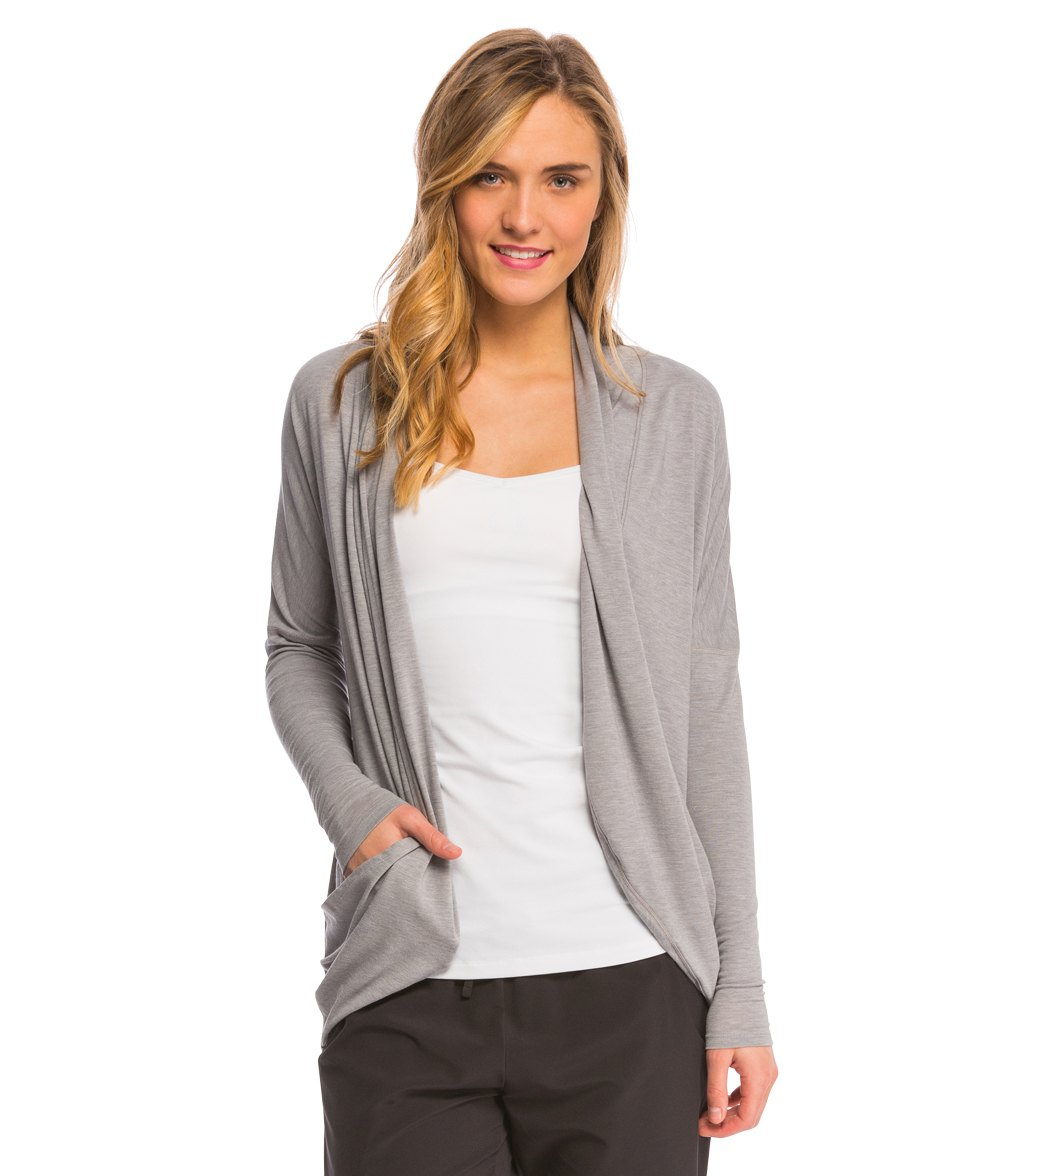 1a40d93446 Lucy Women s Enlightening Wrap at SwimOutlet.com - Free Shipping